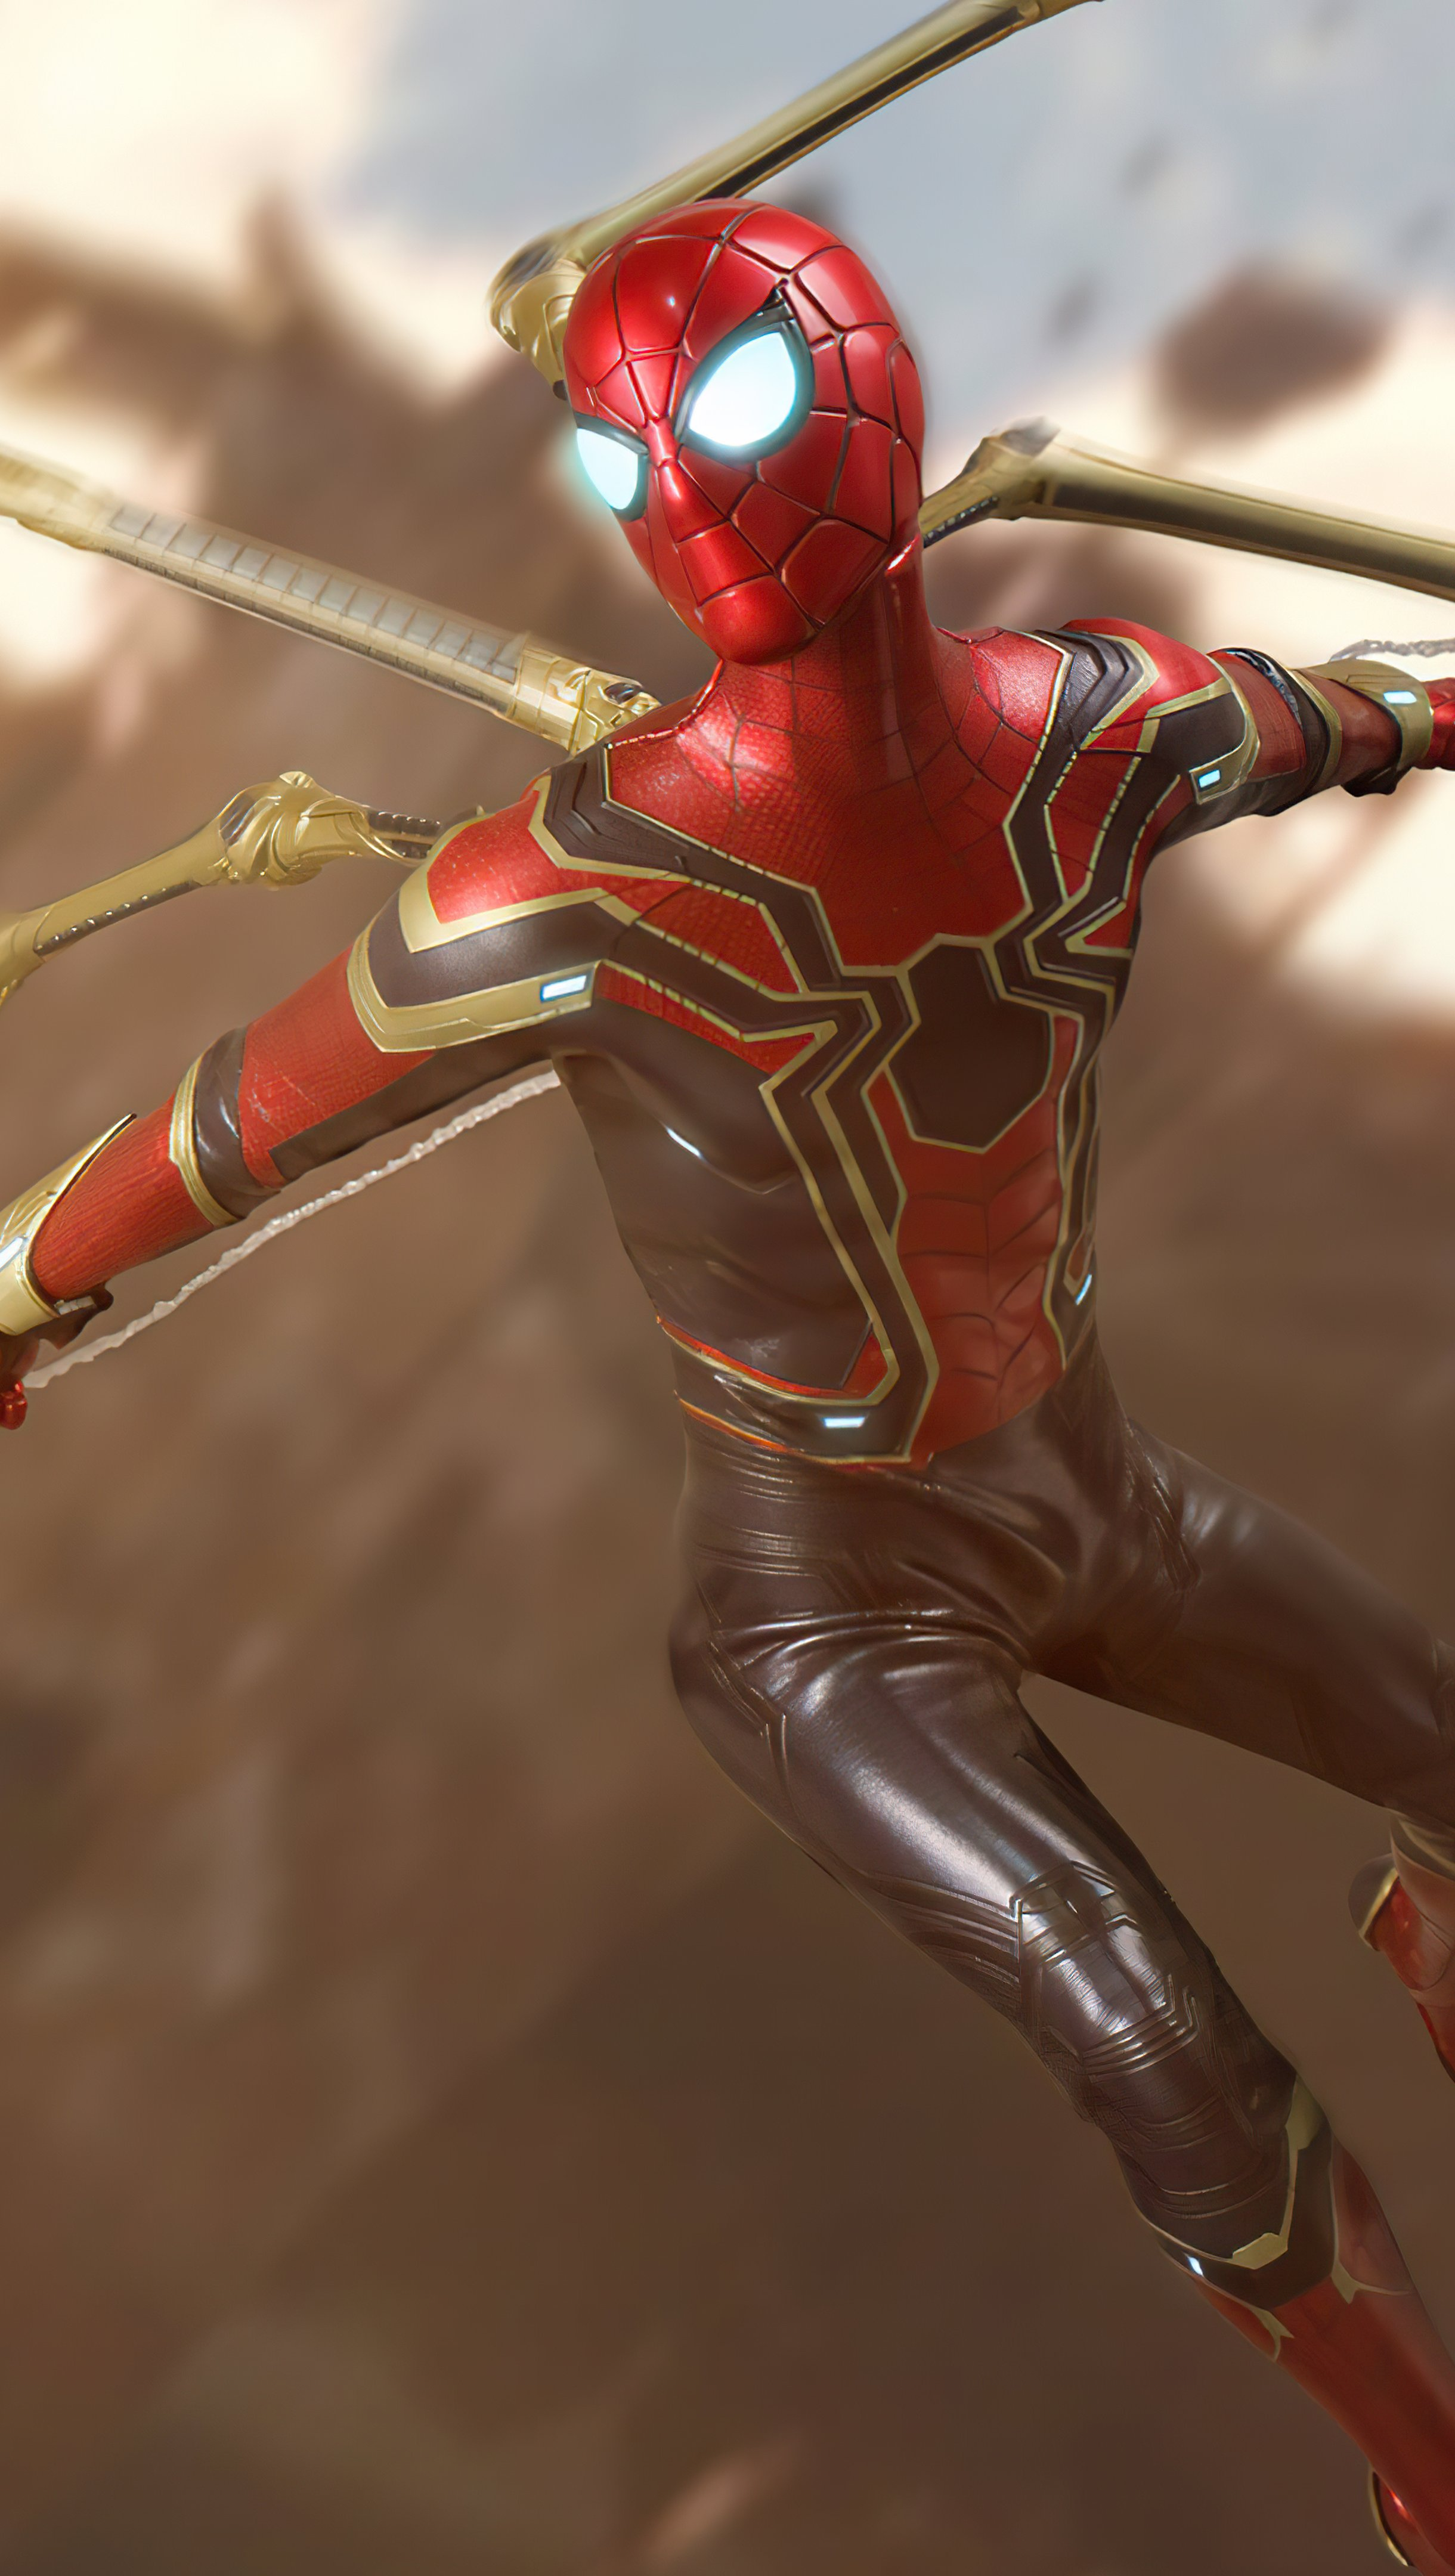 Wallpaper Spider Man with new suit Vertical